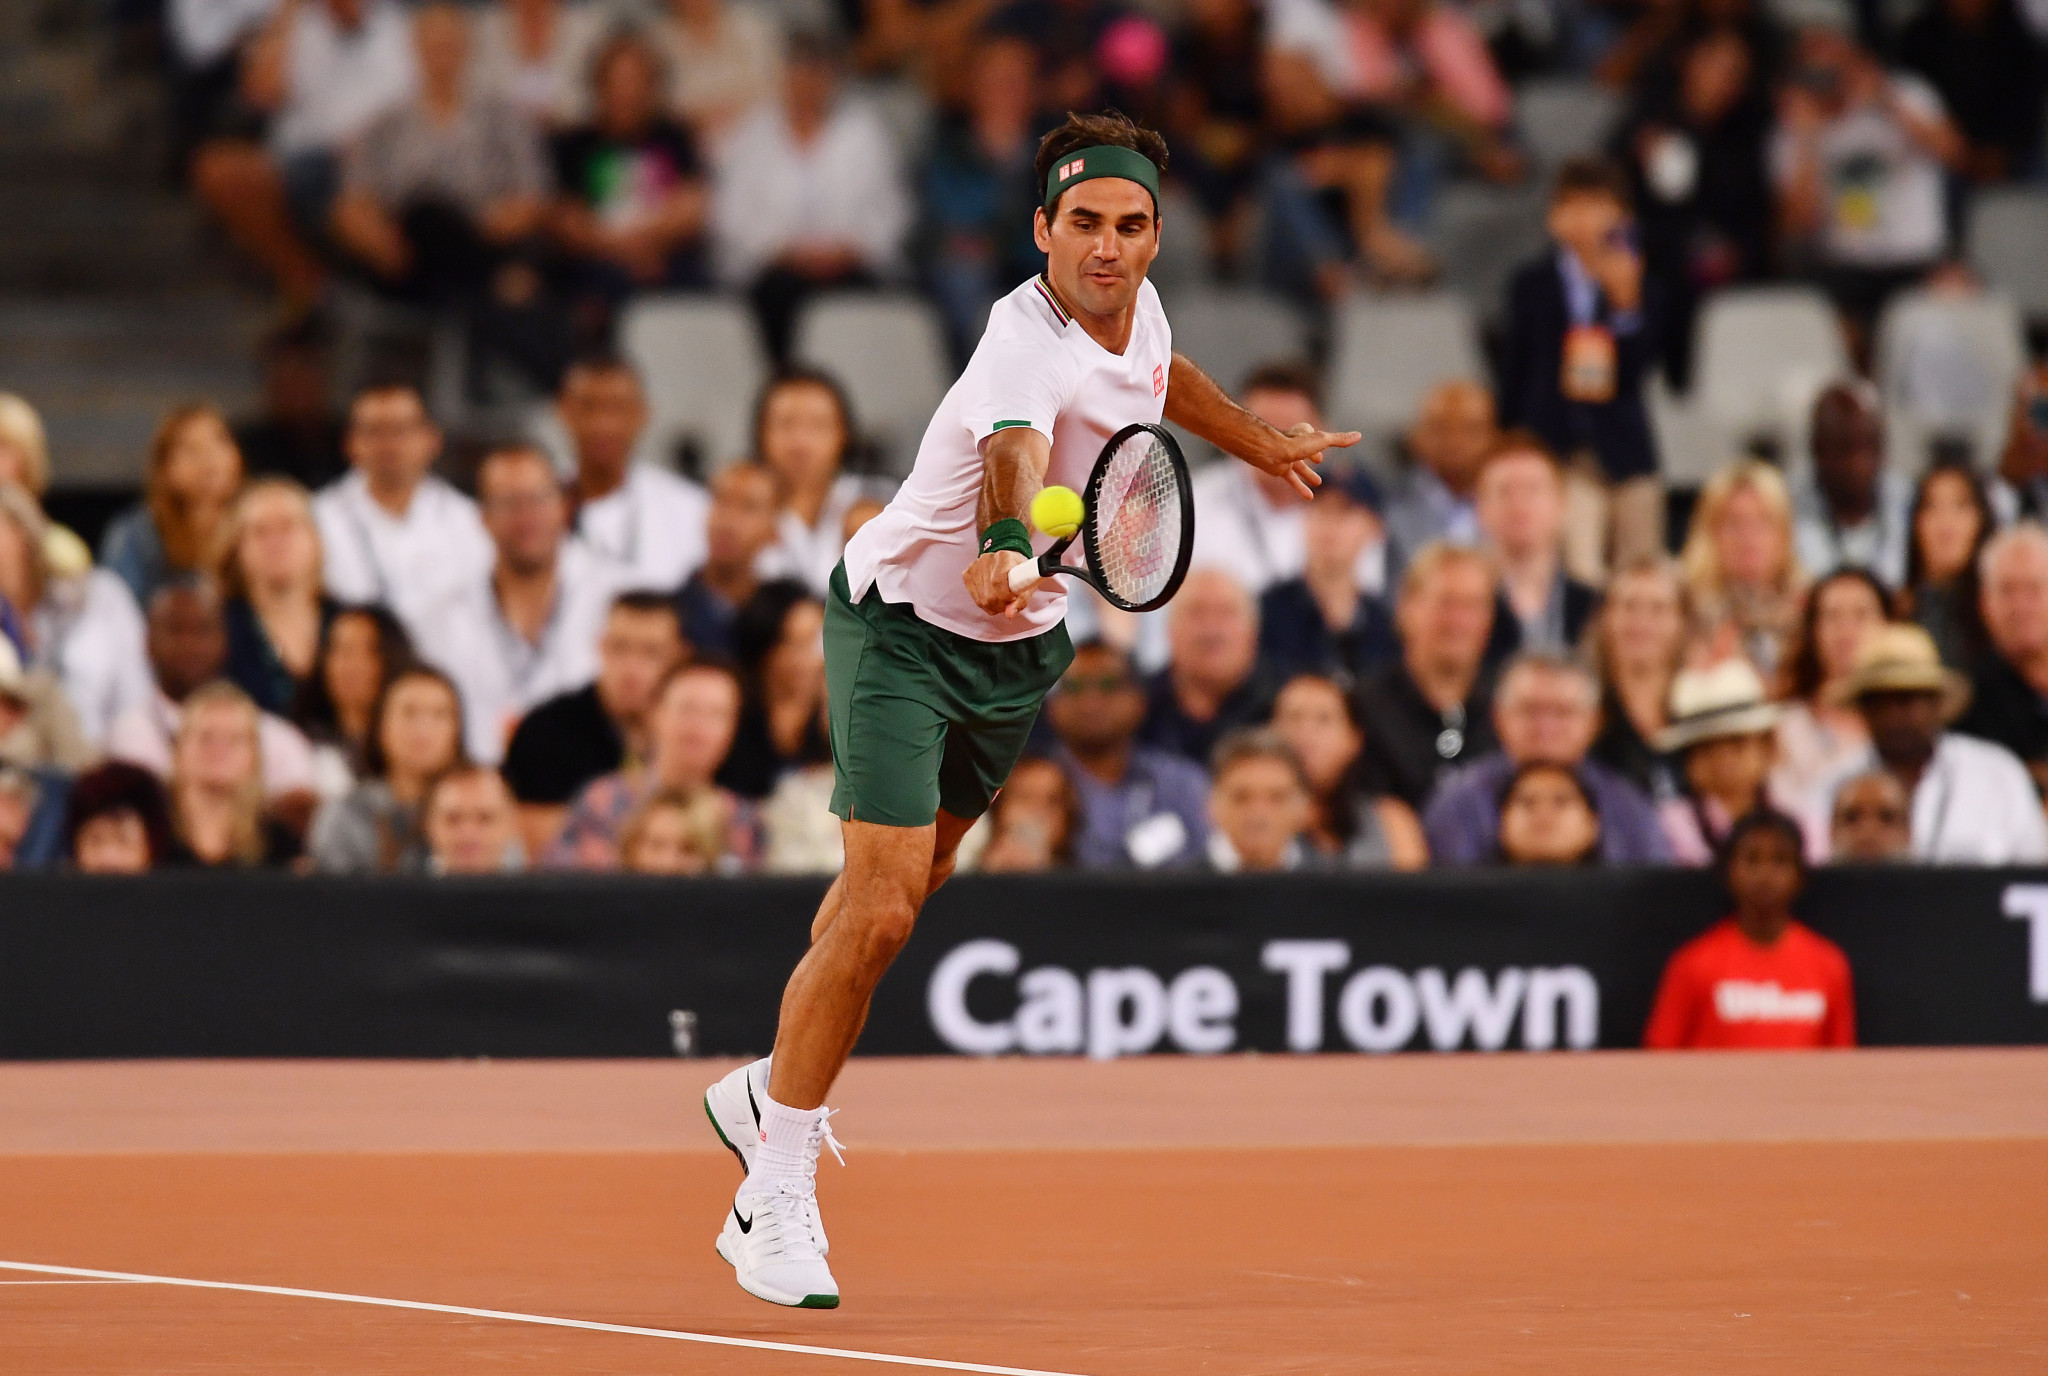 Federer to miss French Open after knee surgery